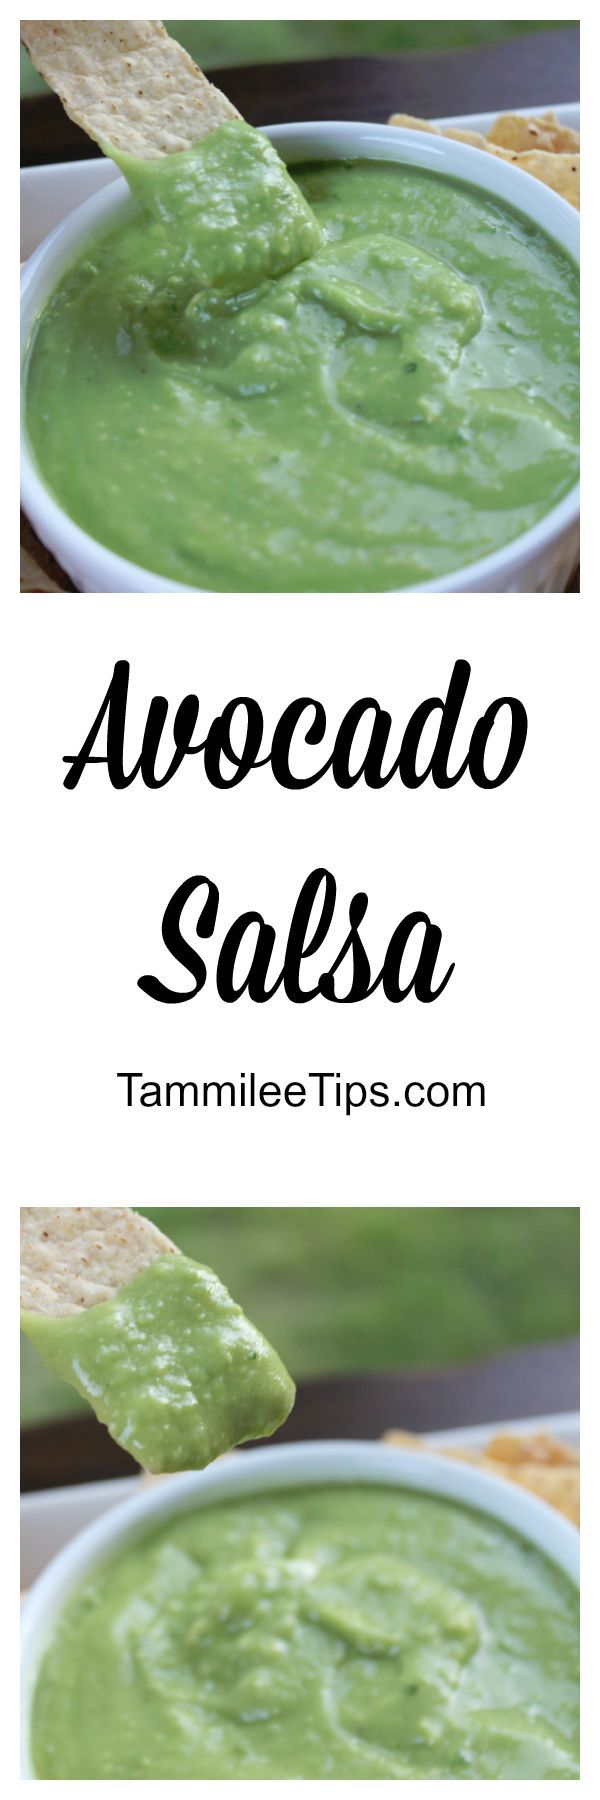 Super delicious and easy to make Avocado Salsa Recipe!